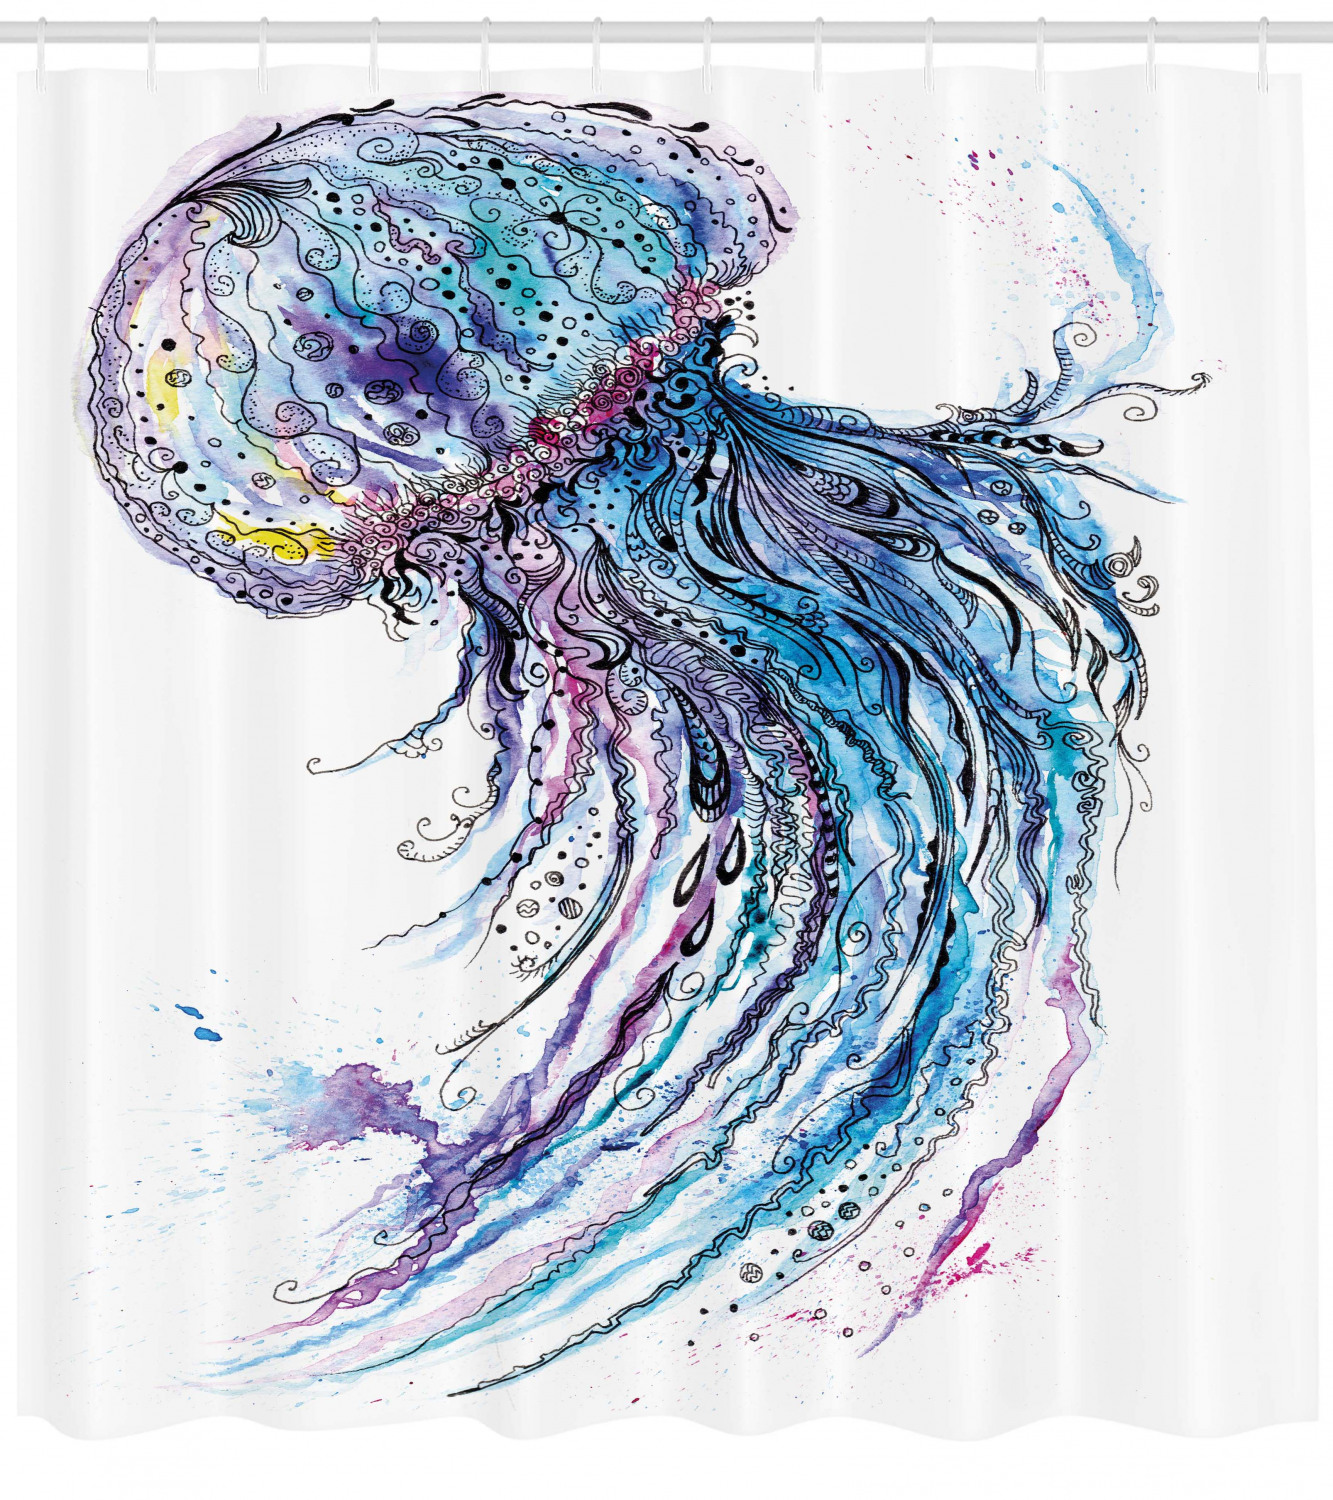 X-LARGE VIBRANT ART DECO STYLE OCEAN FISH WALL DECOR ART WITH WEATHER COATING